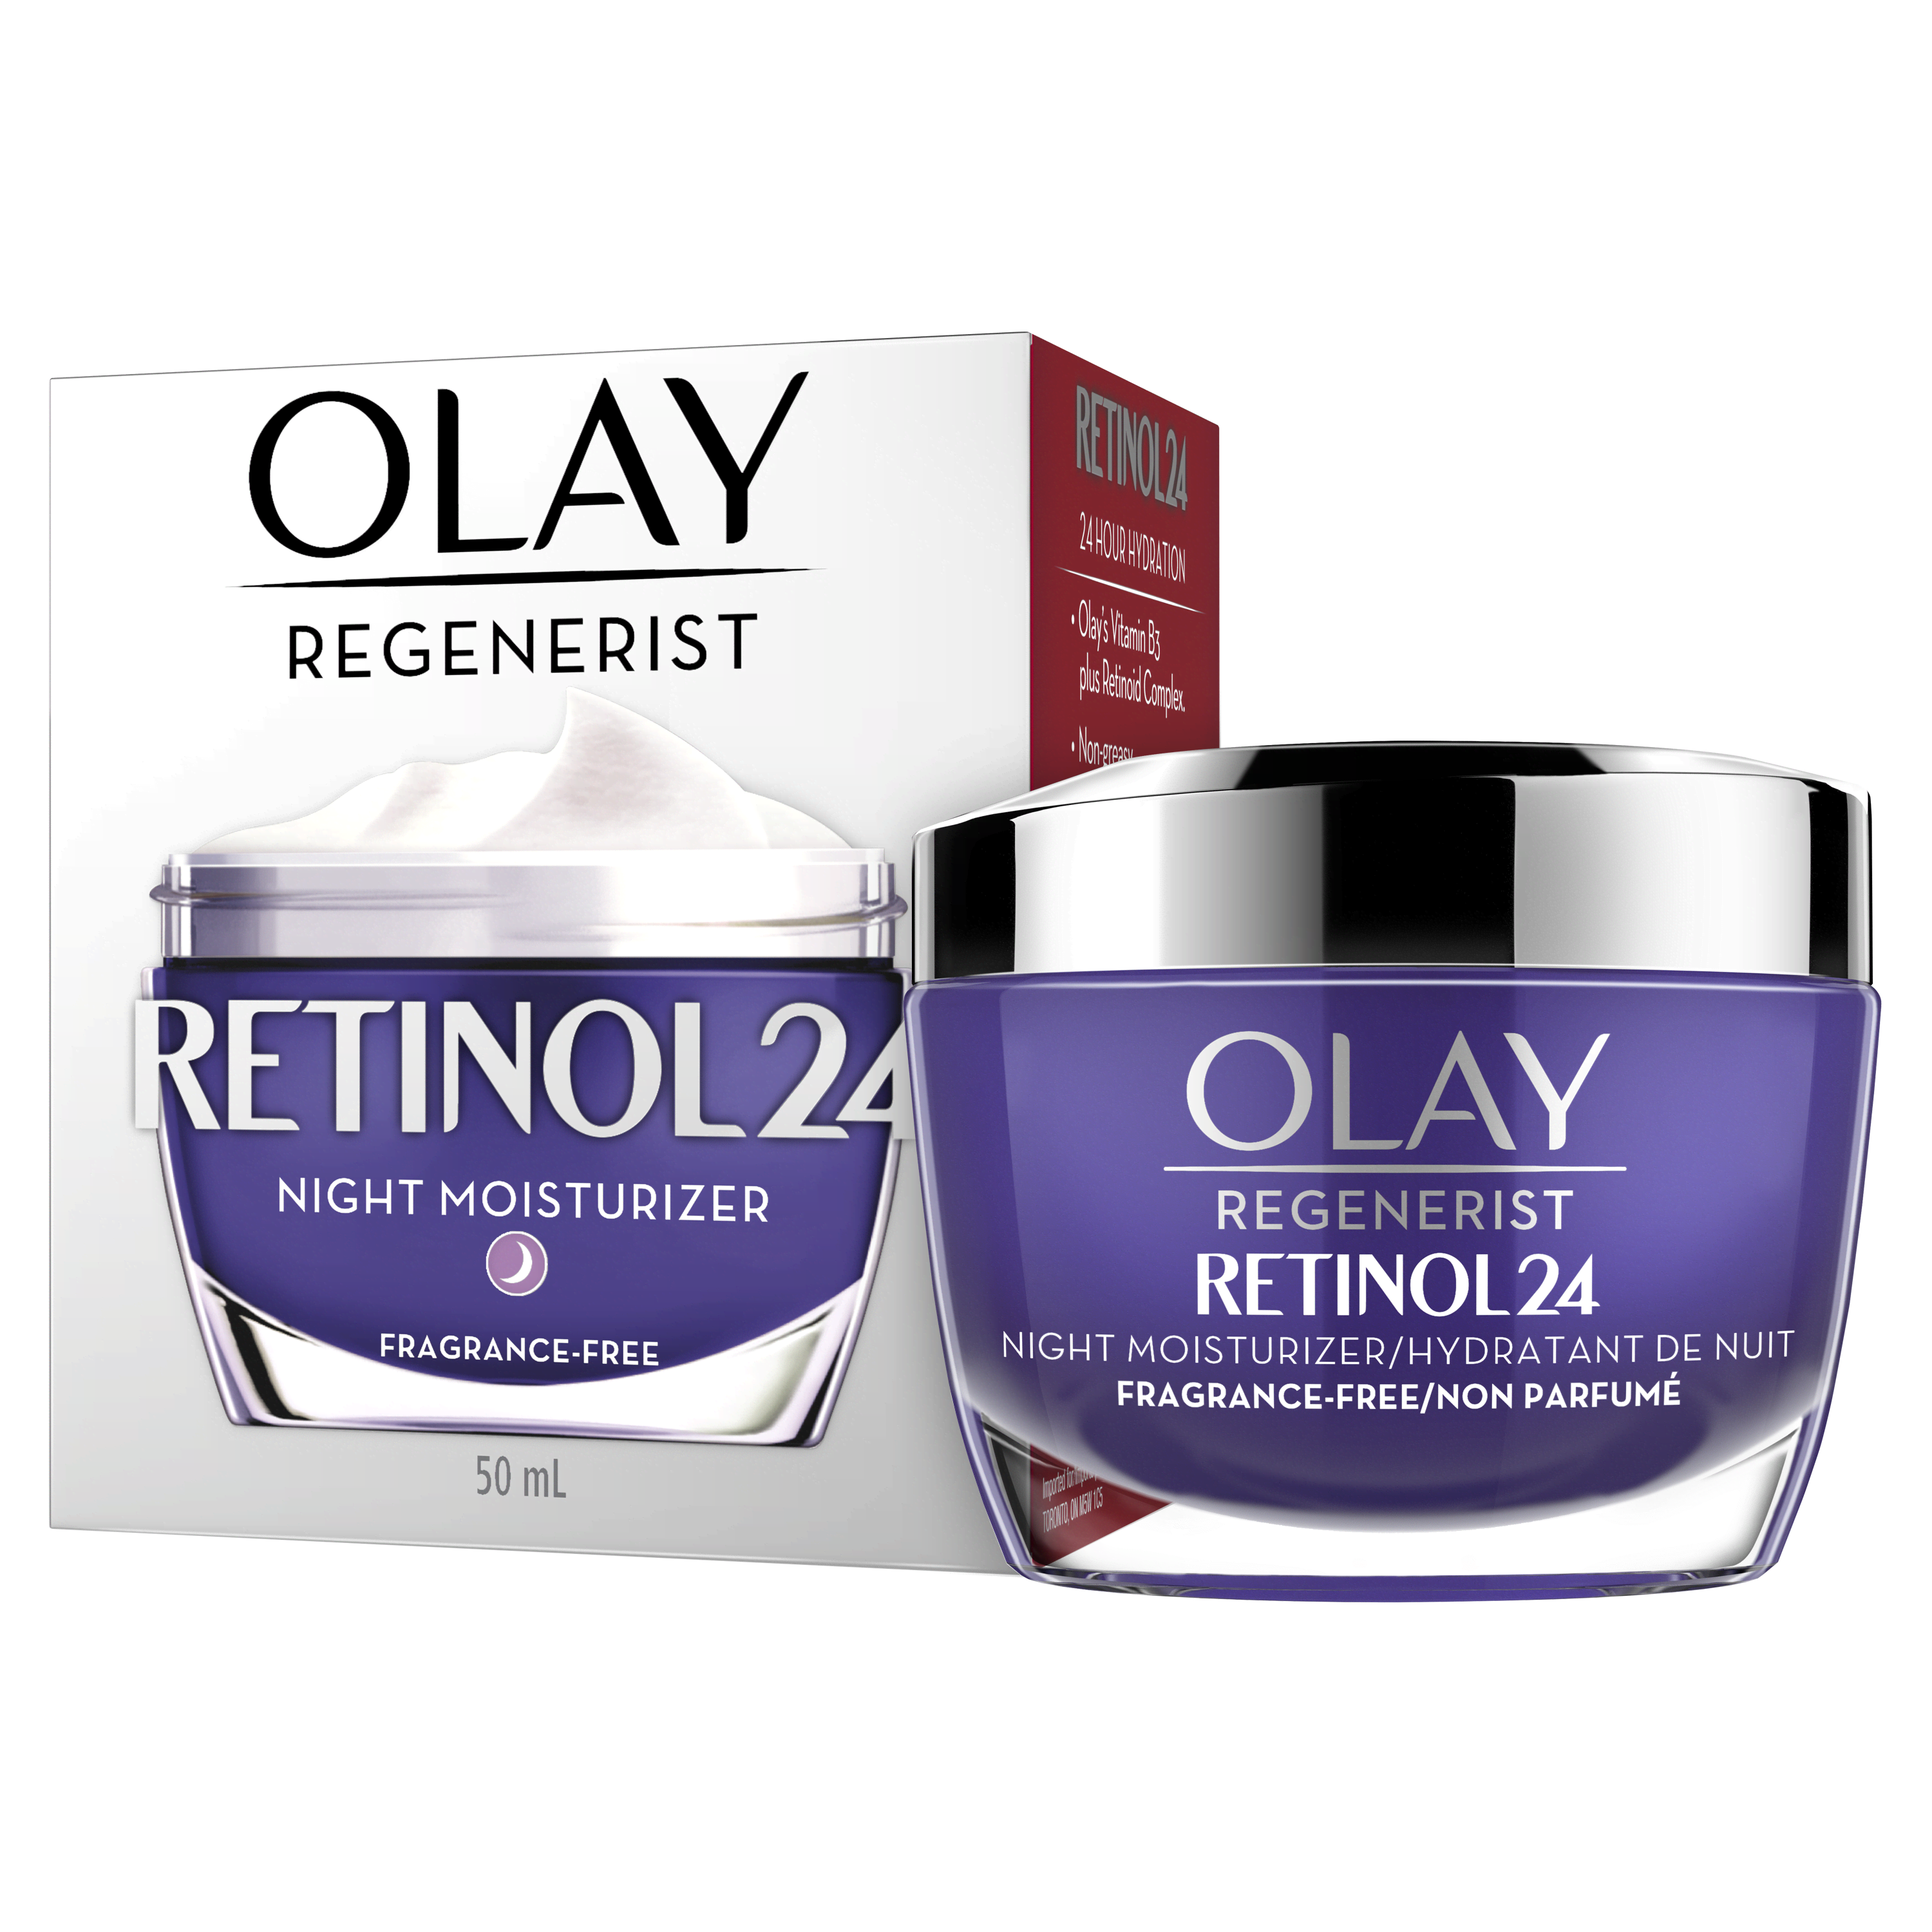 Olay Regenerist Retinol24 Night Moisturizer 50 mL_1